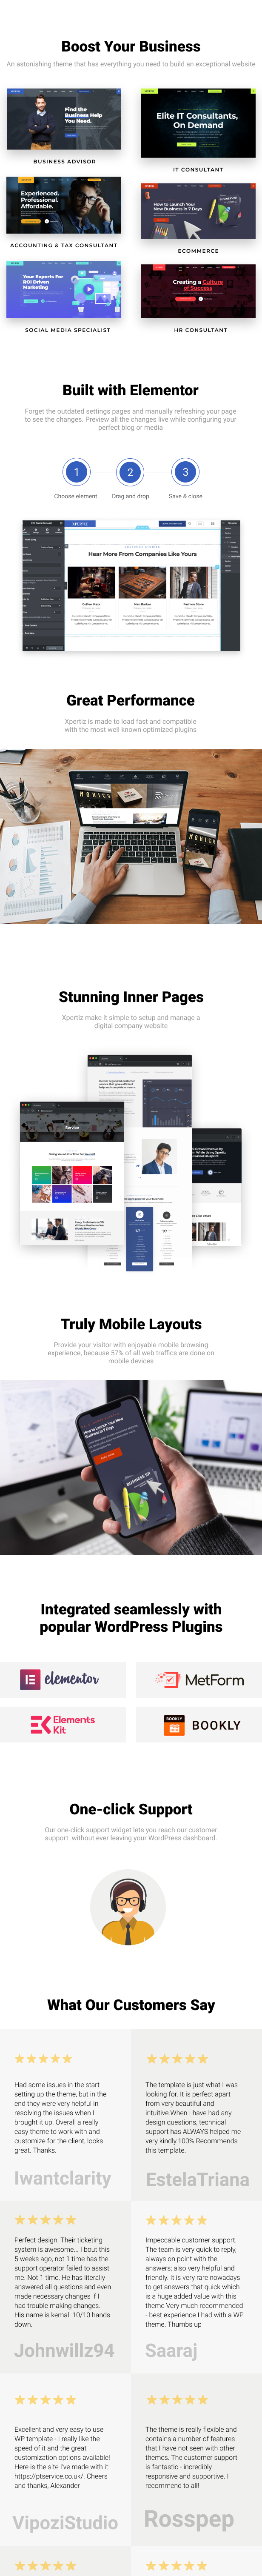 Xpertiz - WordPress Theme For Advisors And Experts - 1